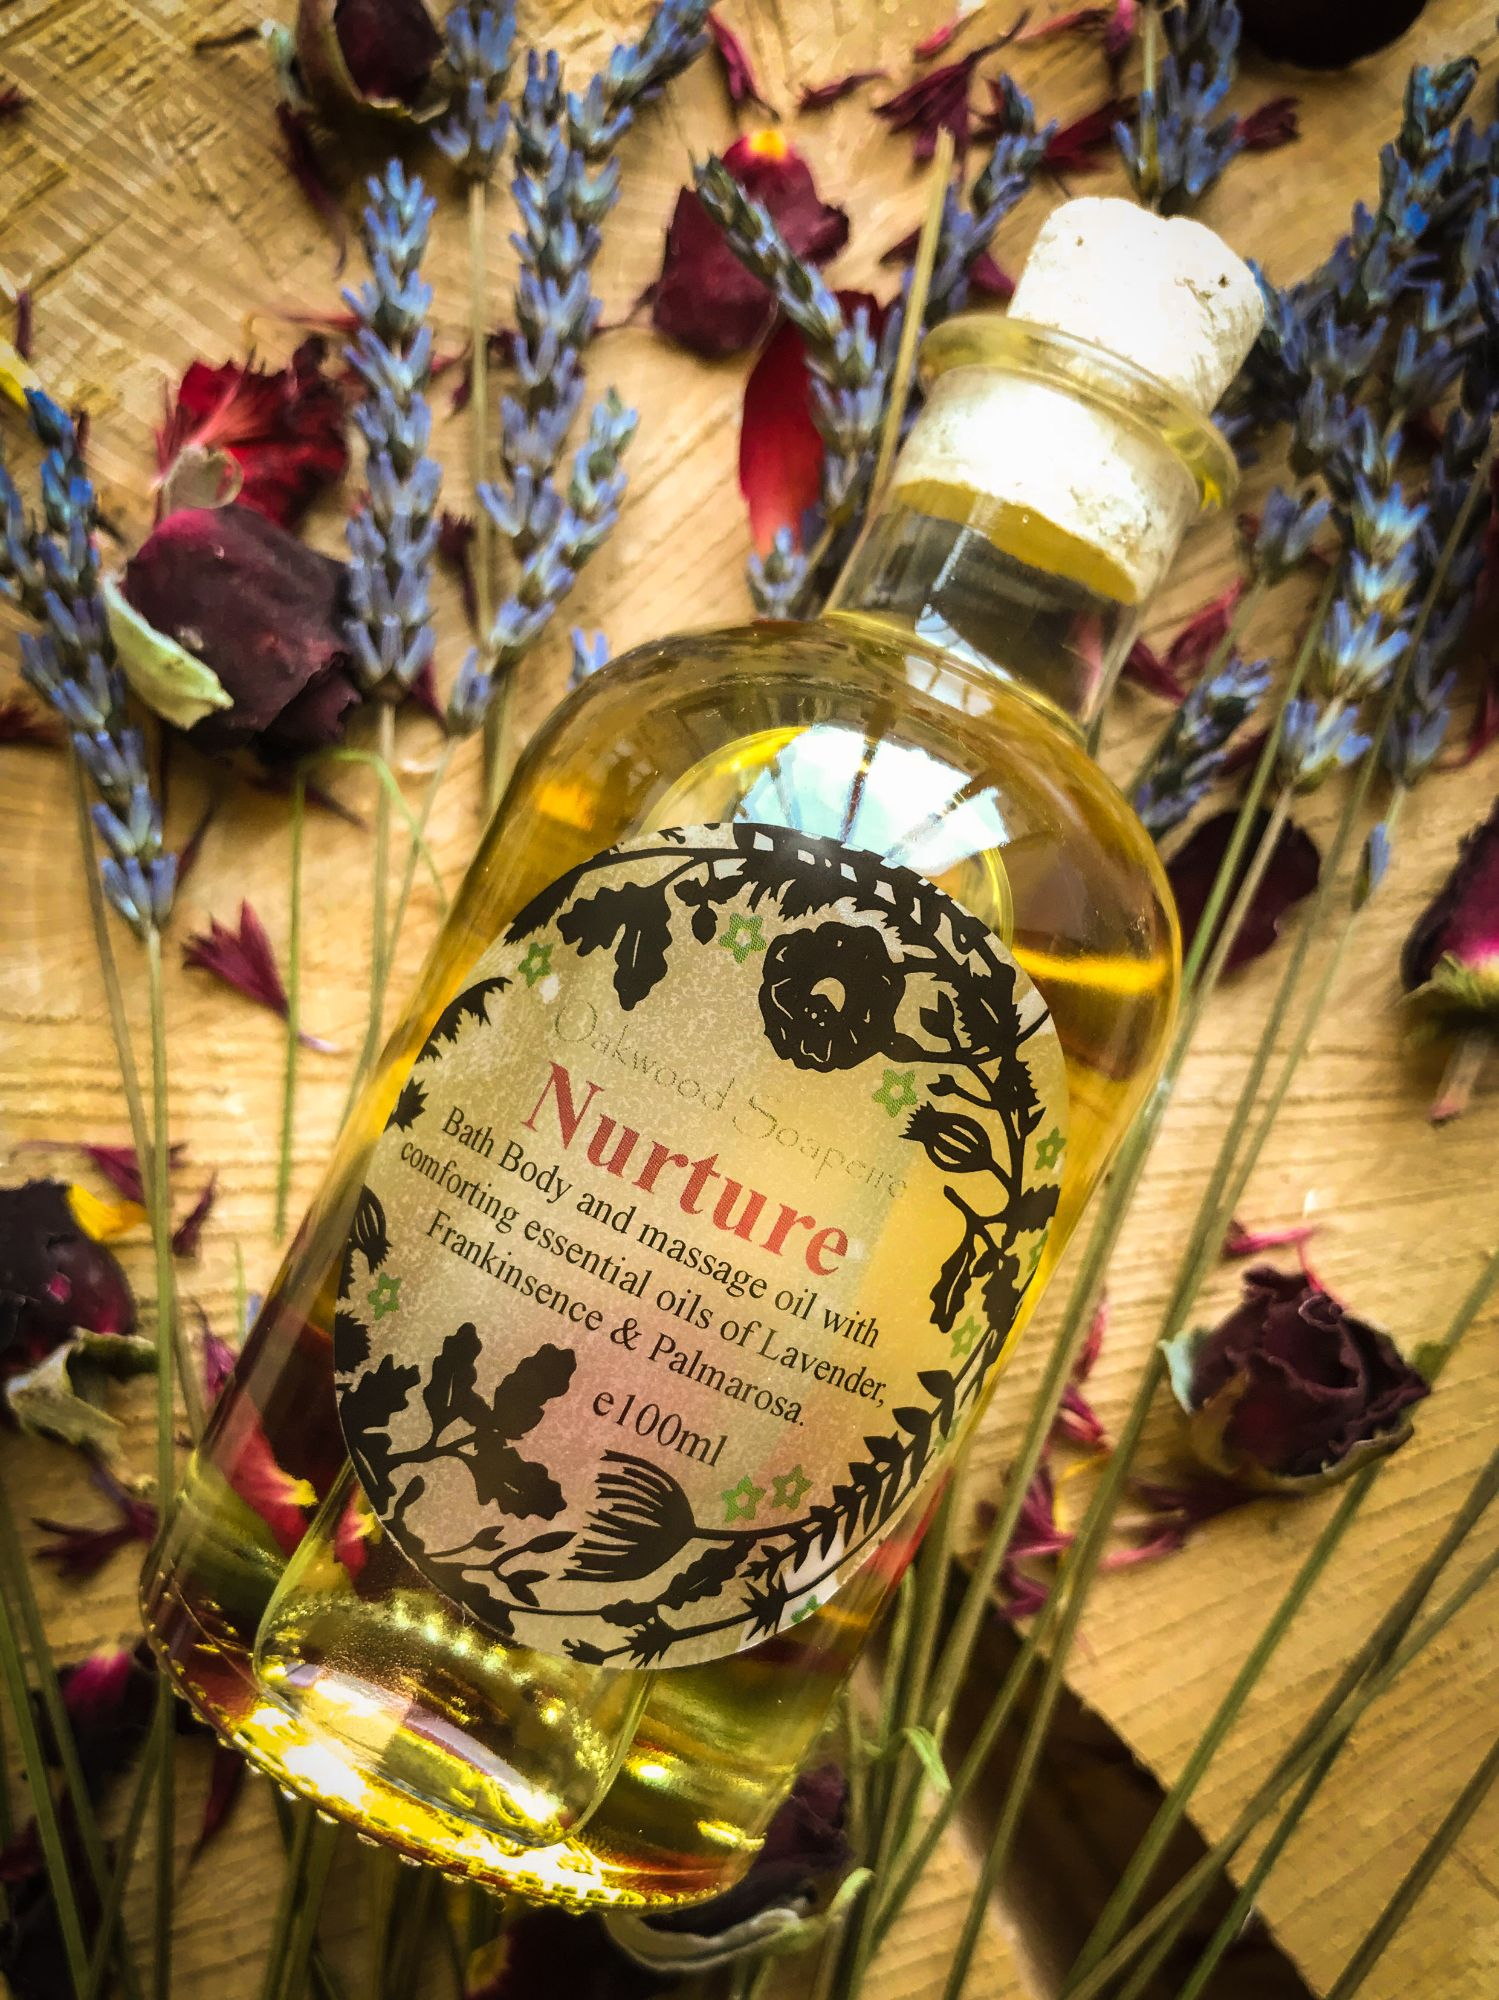 Nurture Bath and body oil